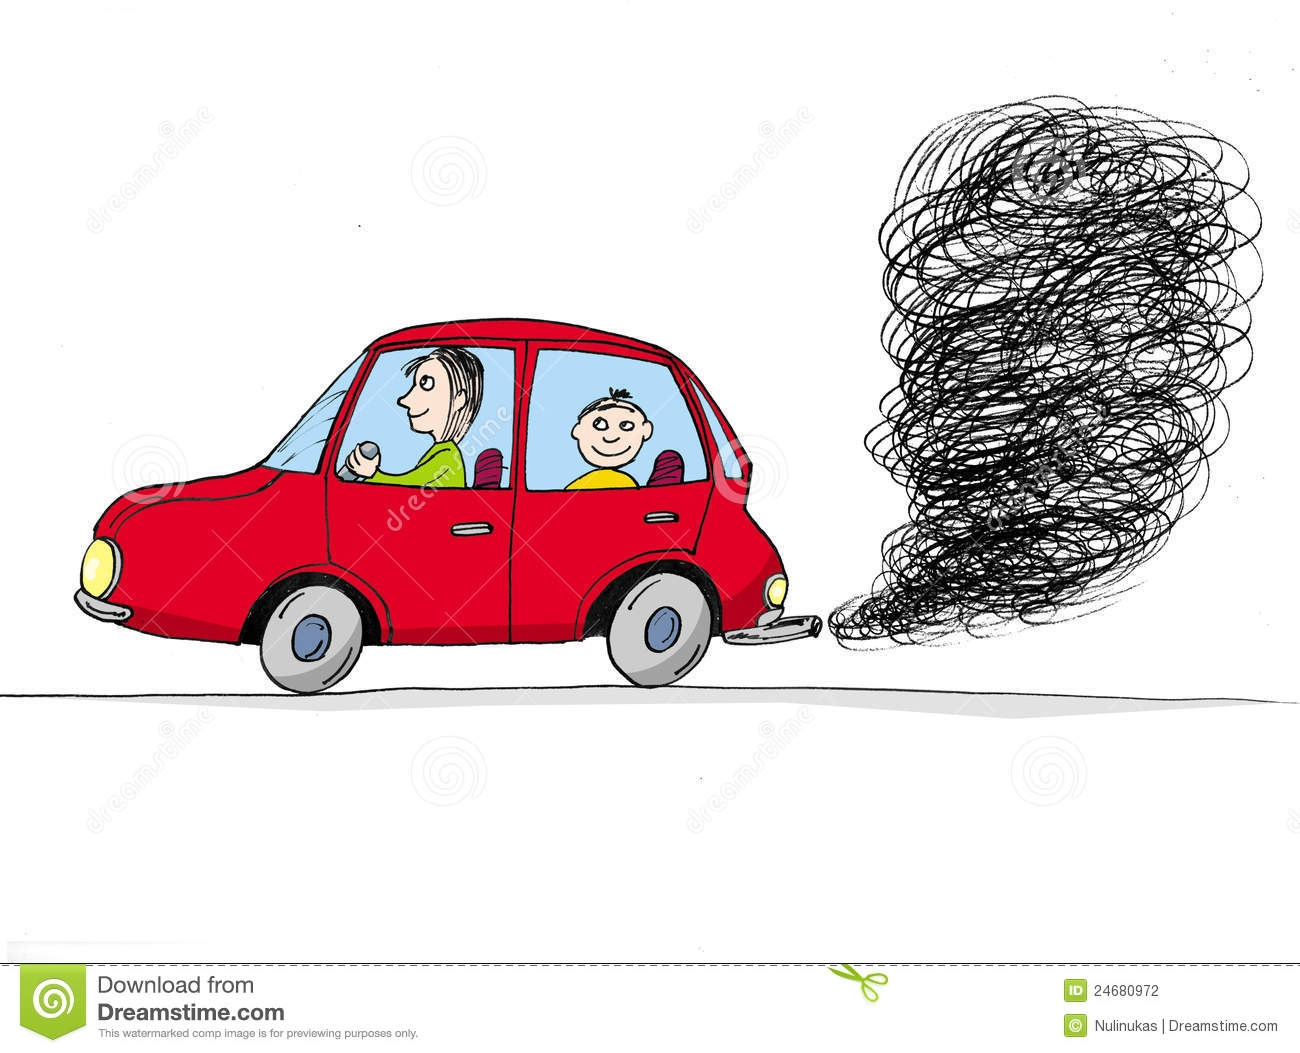 Smoking clipart exhaust smoke Clipart Car Smoke com Exhaust